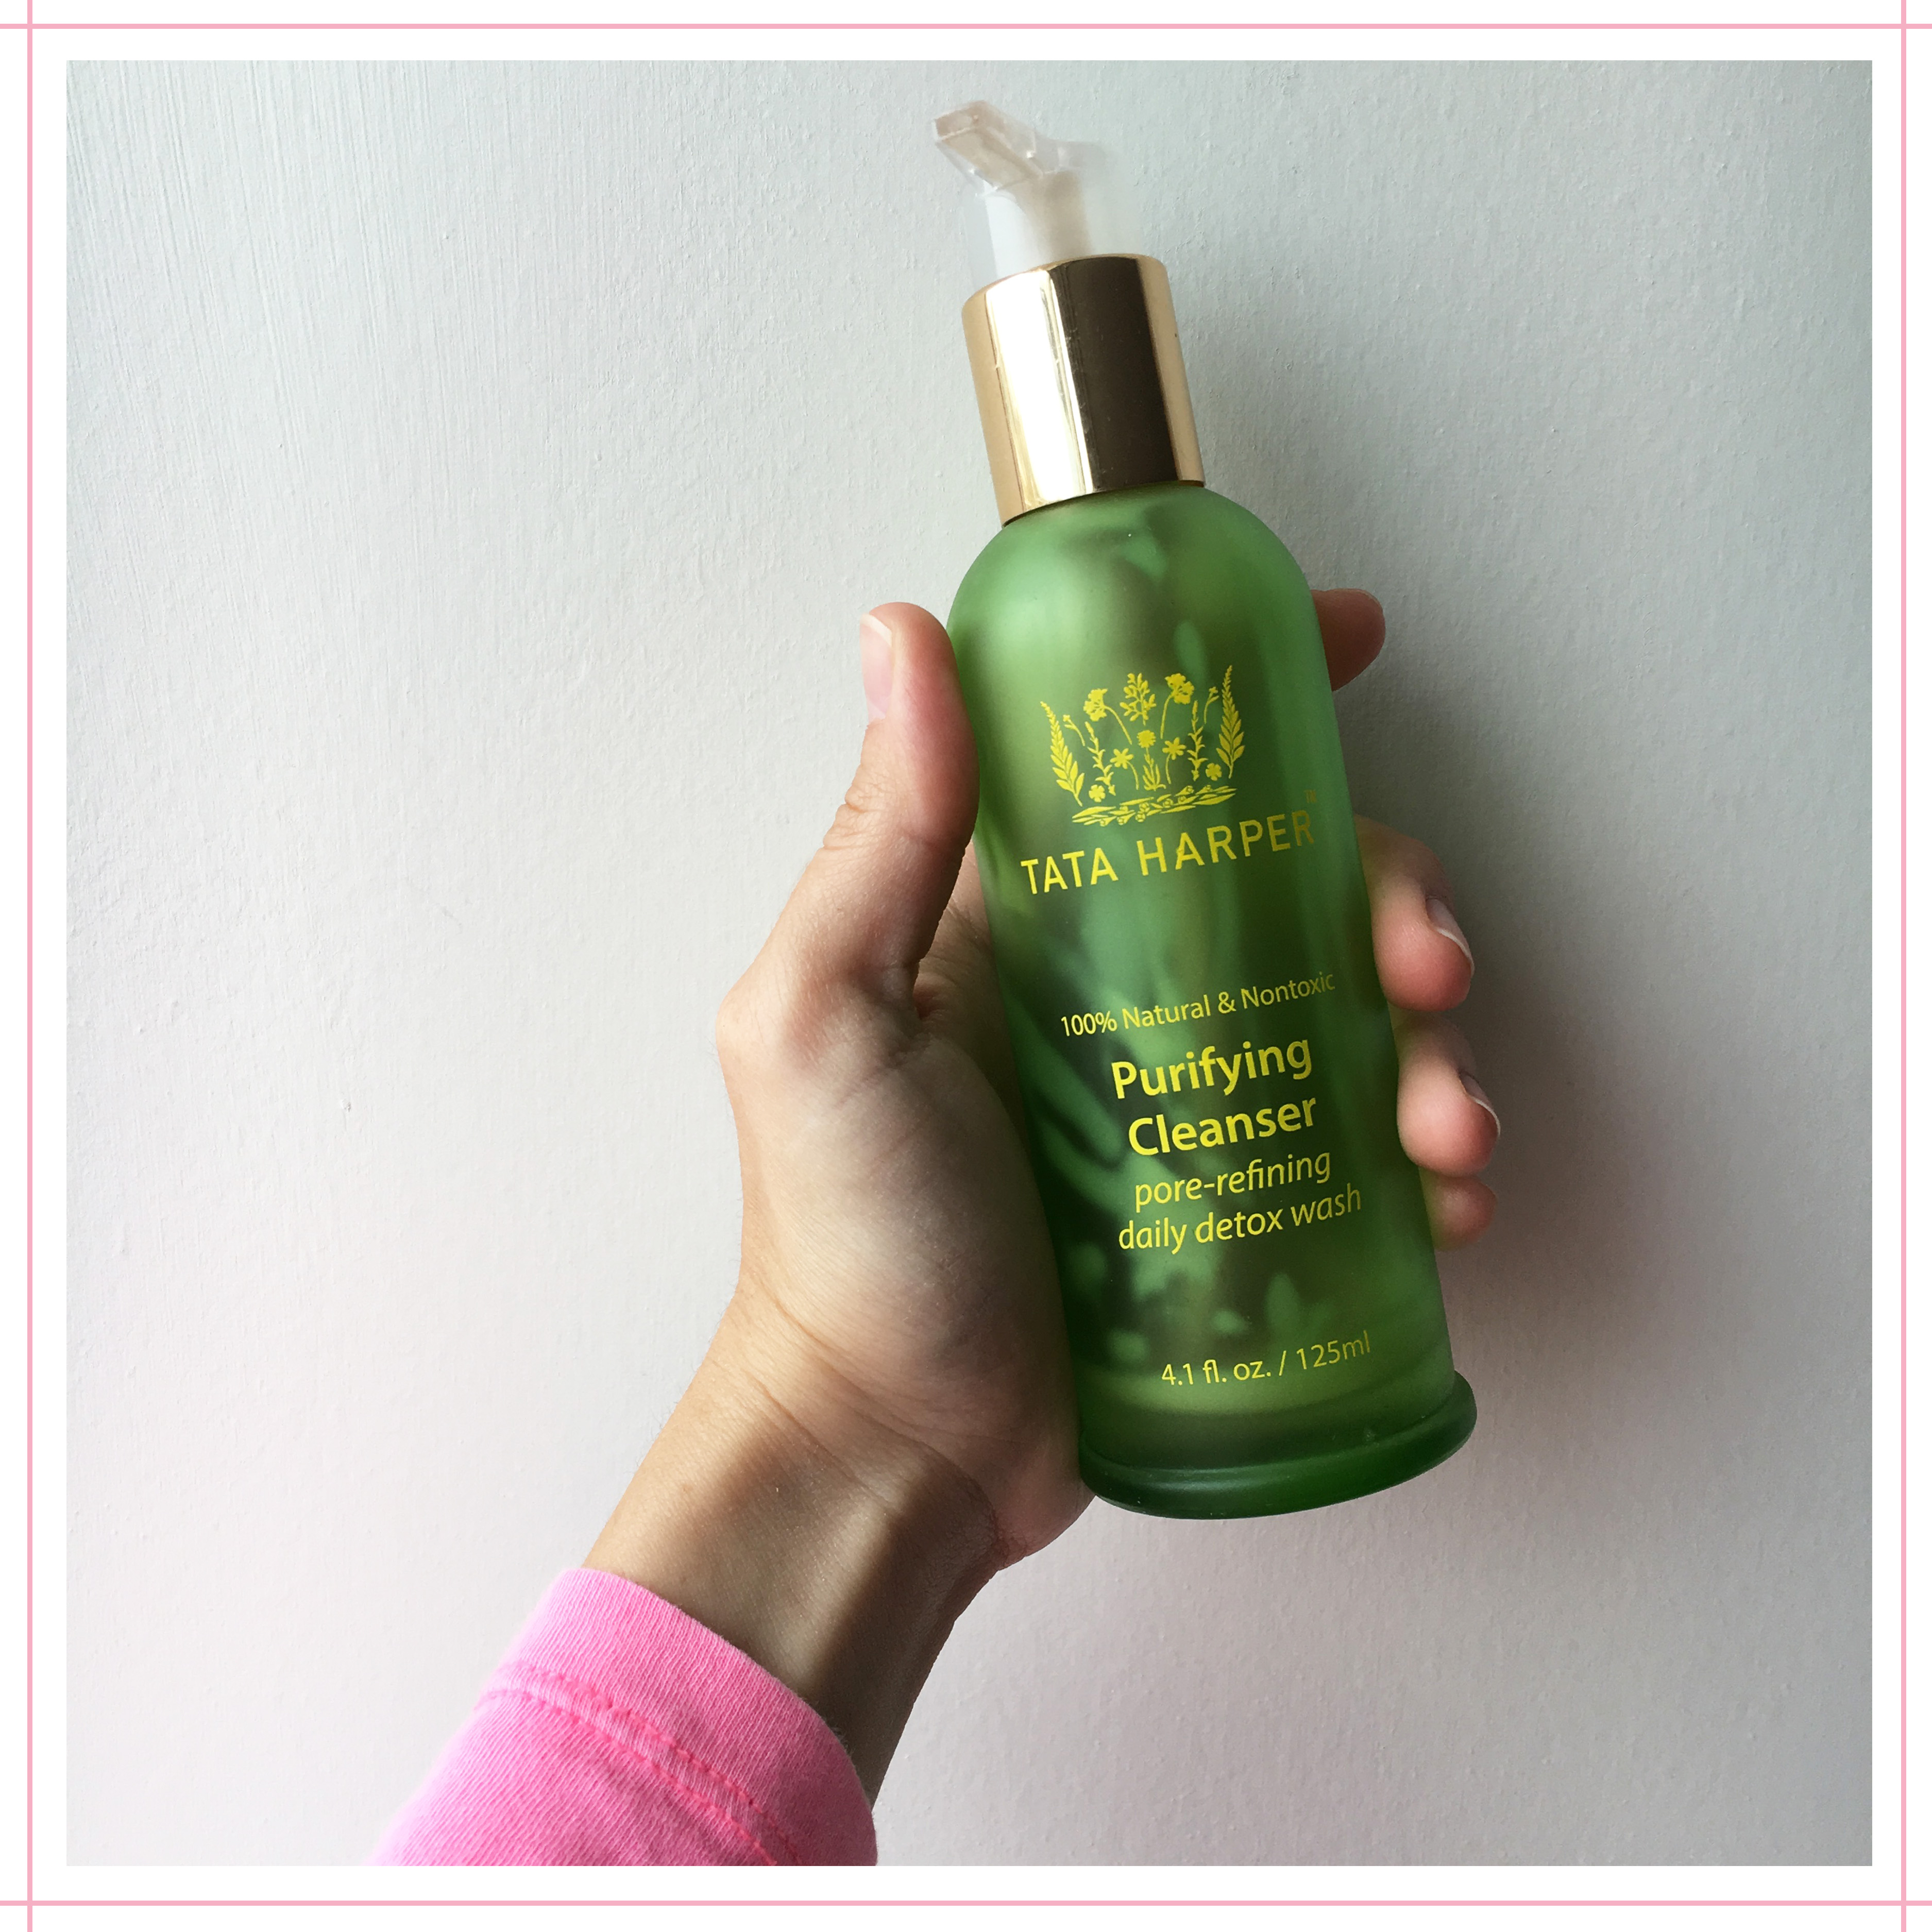 Purifying Cleanser by tata harper #13